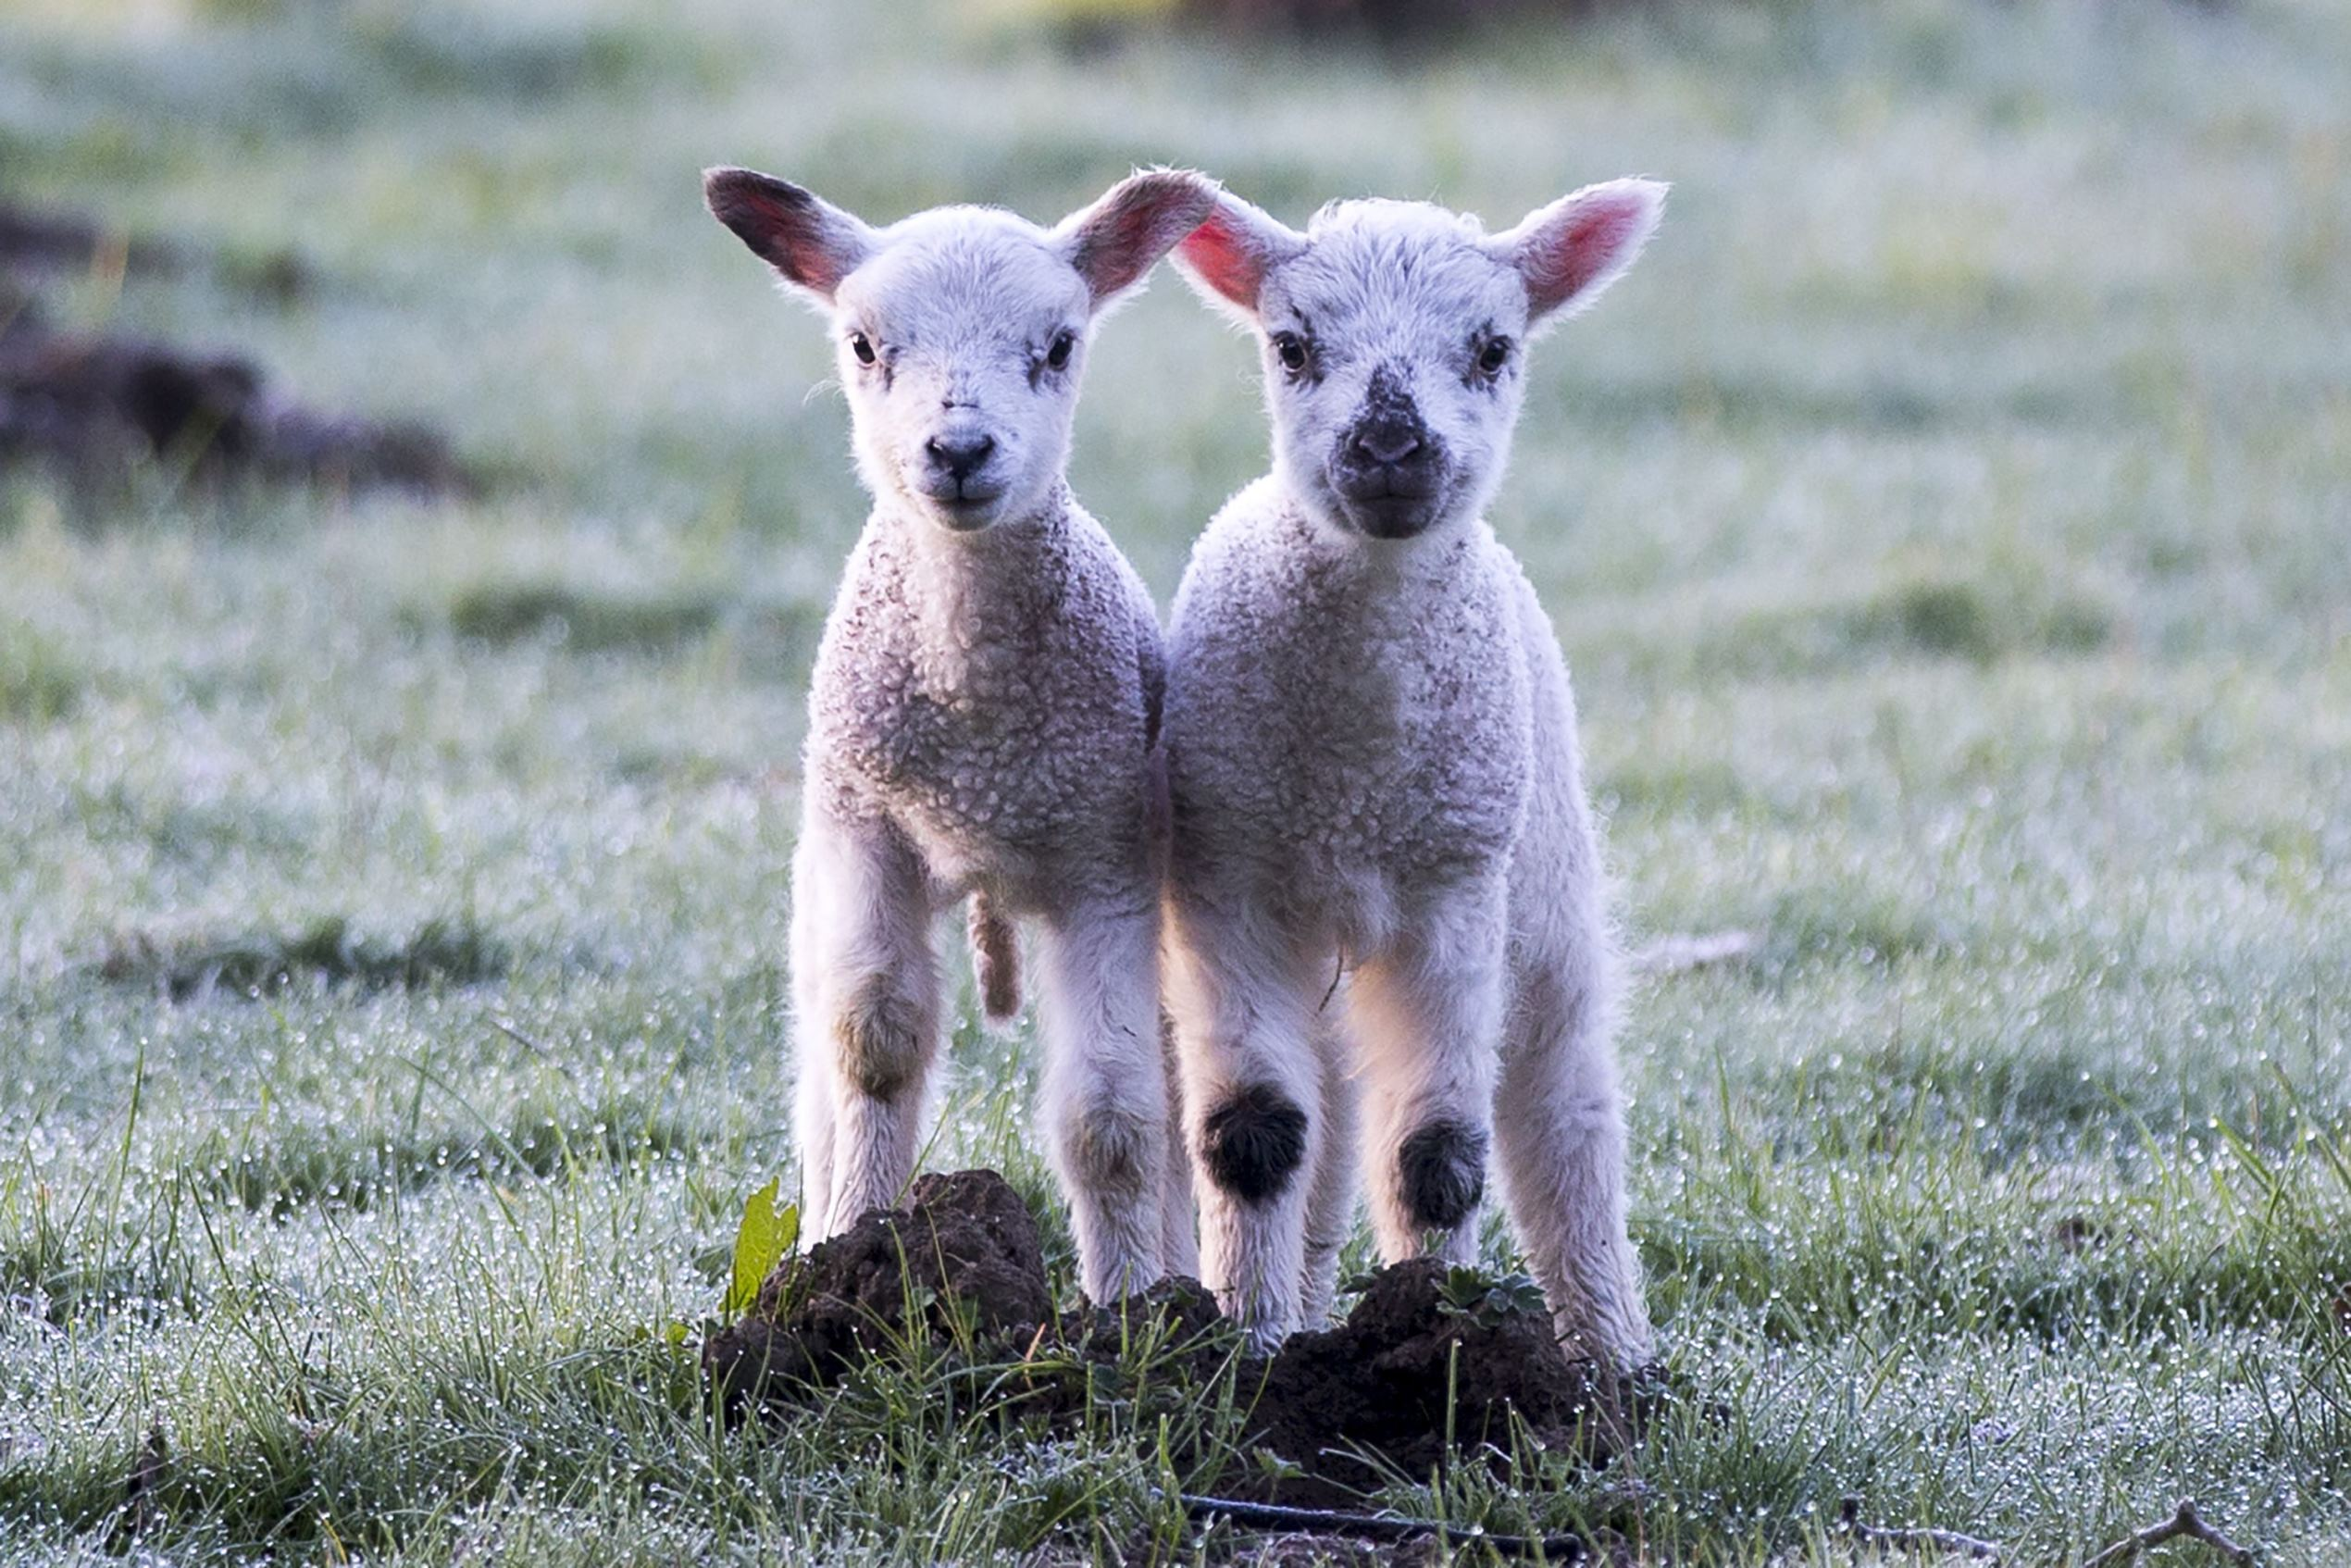 Слайд 40 из 67: Seasonal weather, Leeds, Britain - 19 Apr 2016 Two lambs stand in a frost covered field